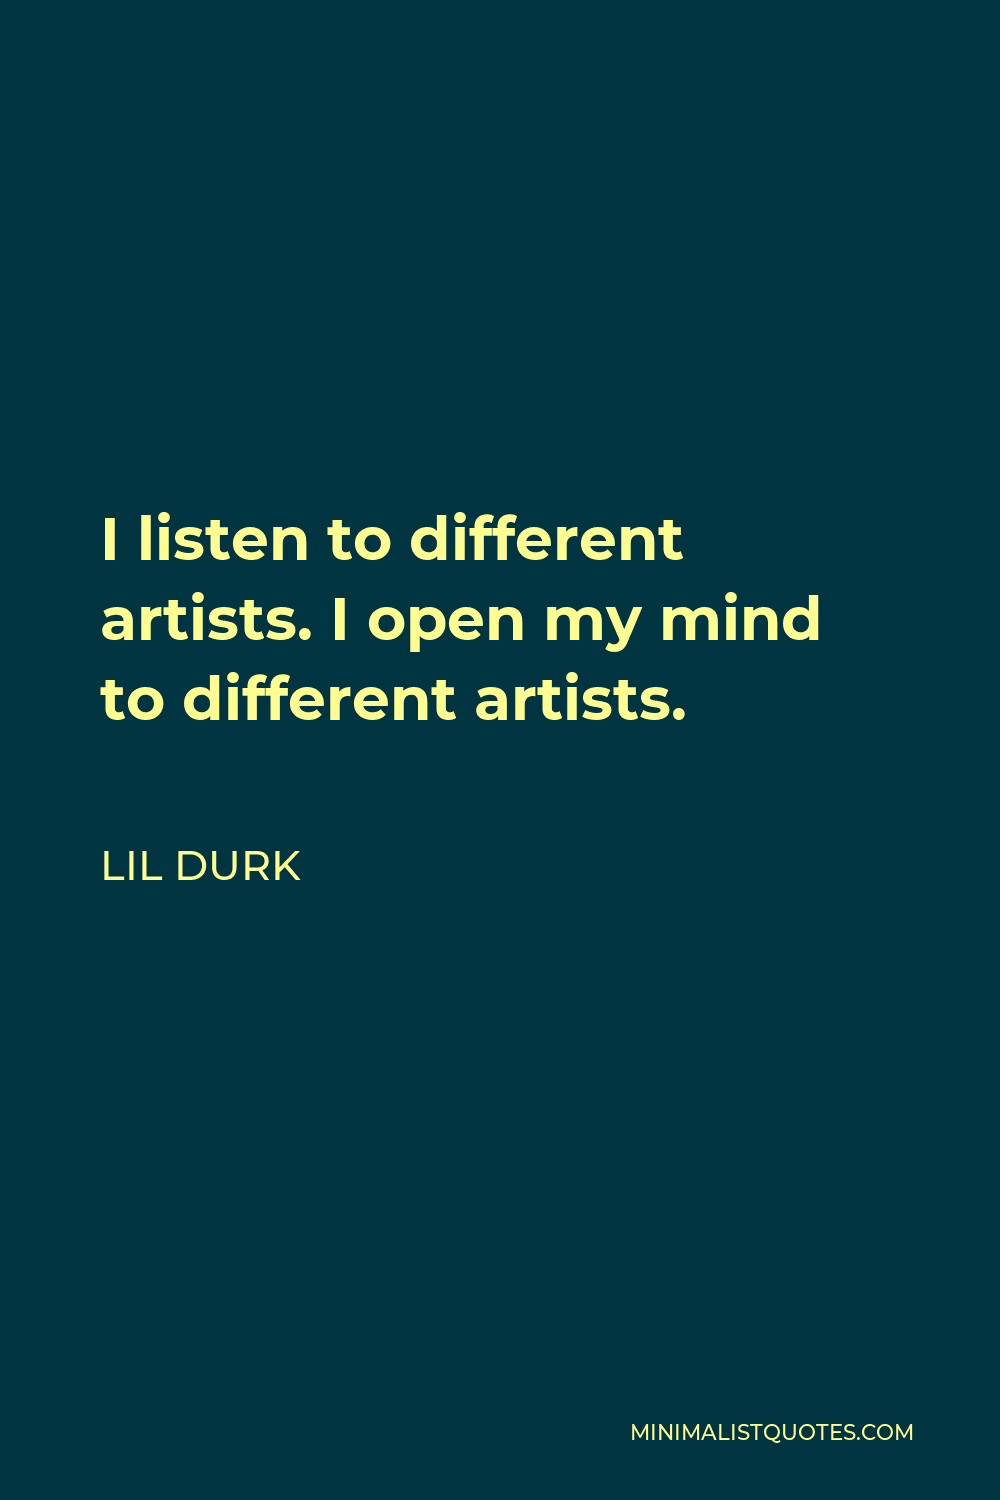 Lil Durk Quote - I listen to different artists. I open my mind to different artists.